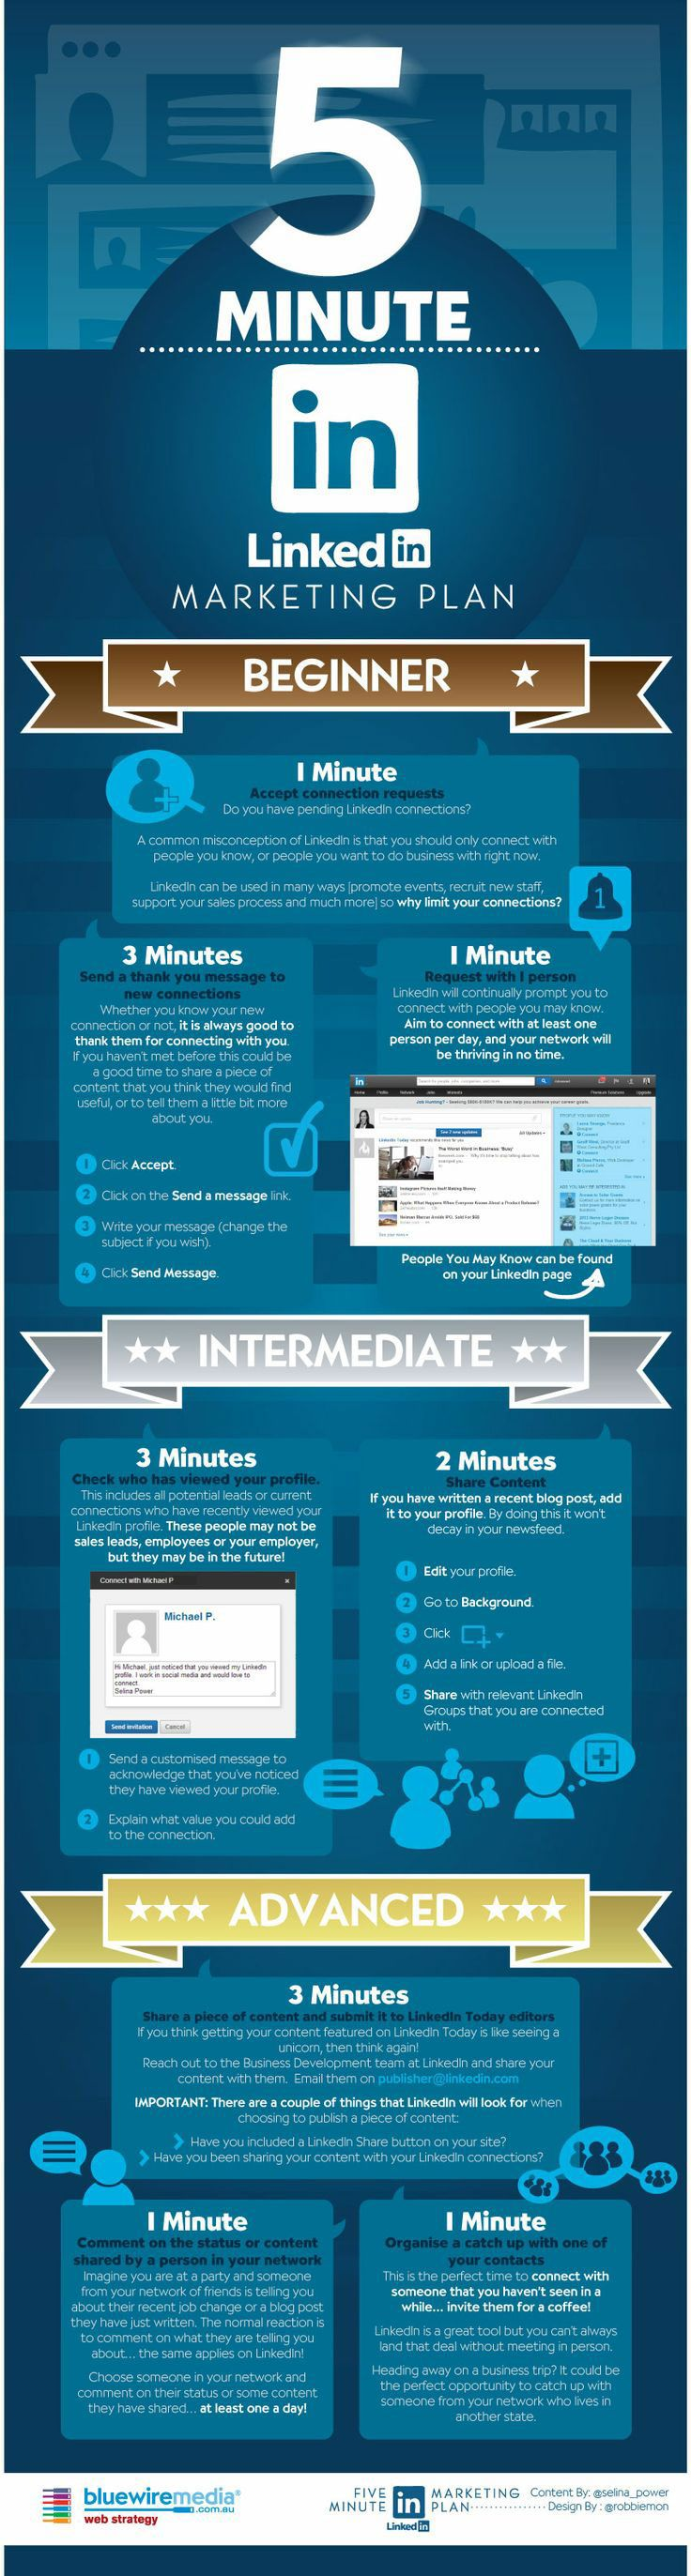 5 Minute LinkedIn Marketing Plan #infographic #linkedinmarketing